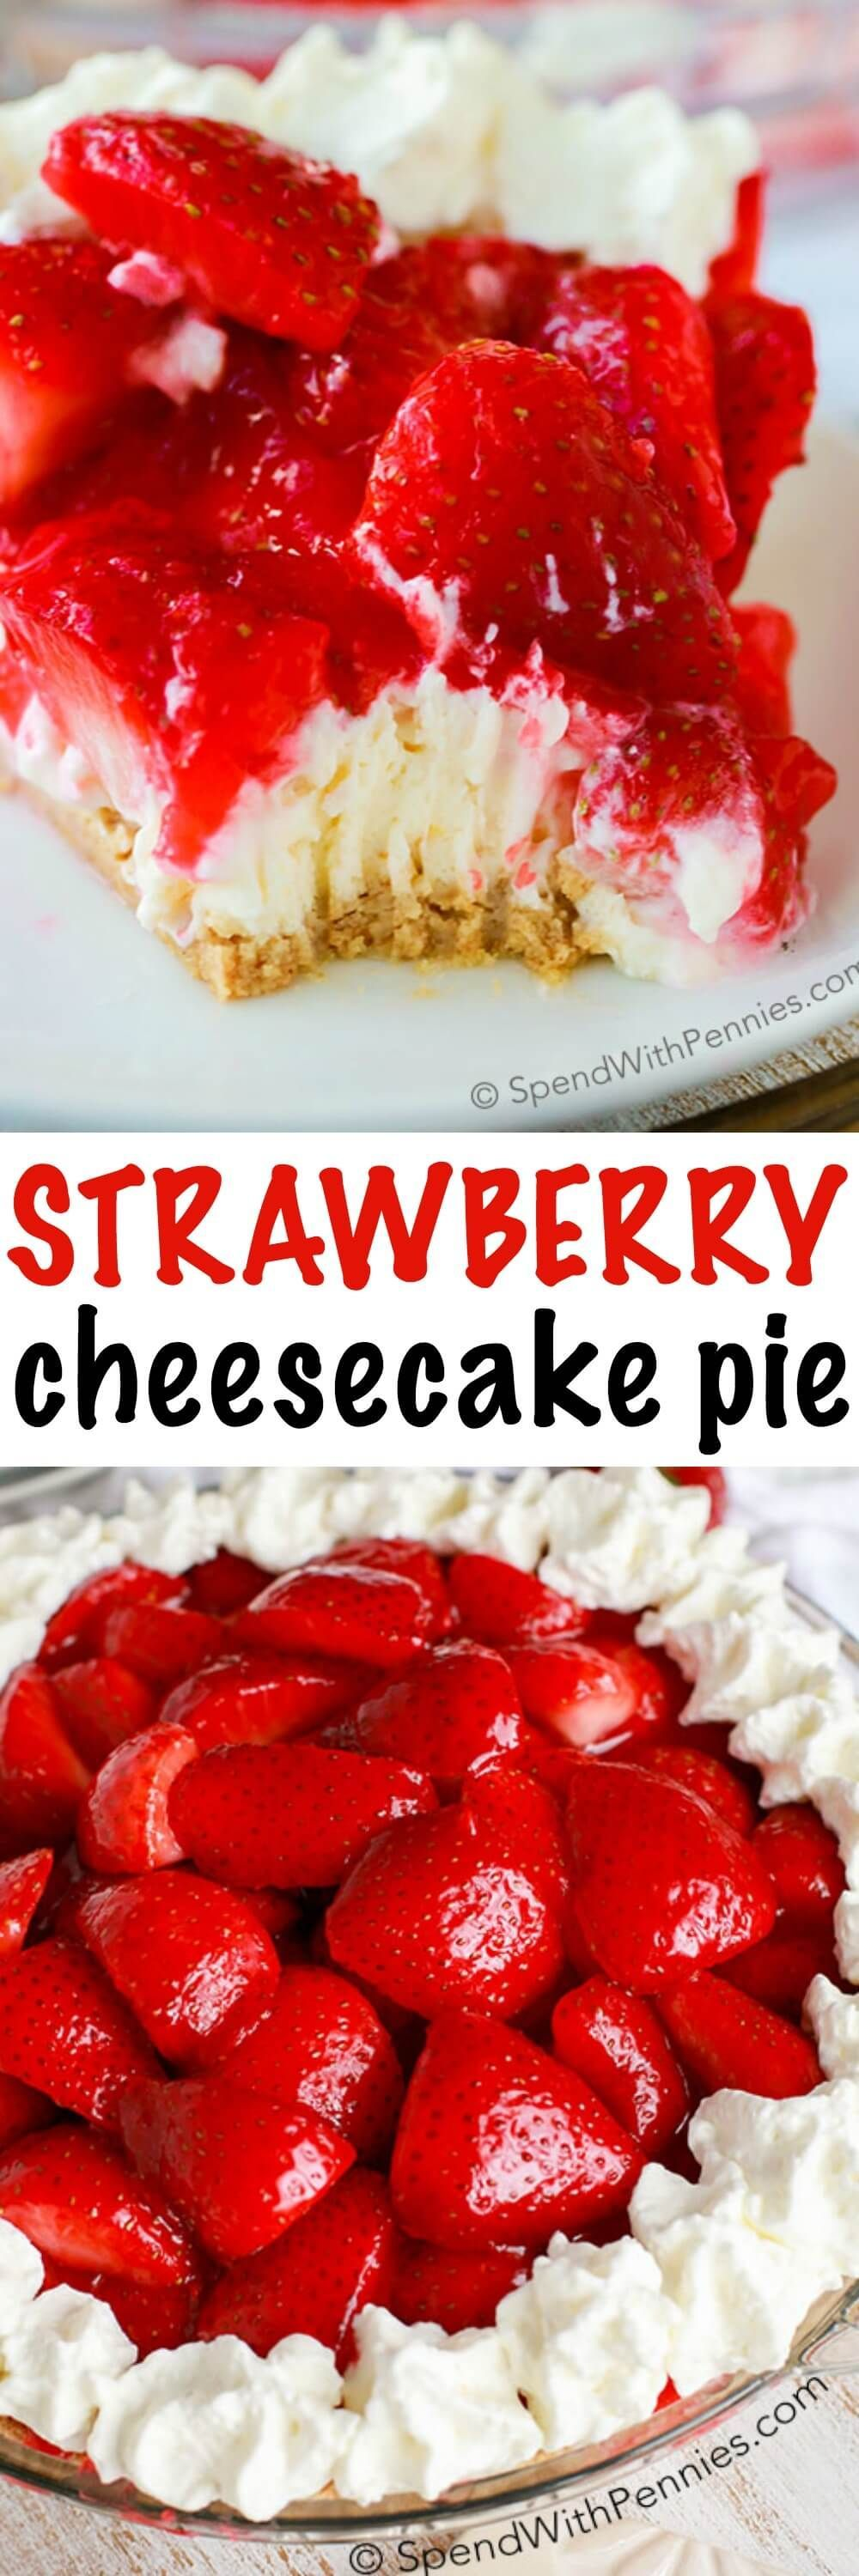 Strawberry Cheesecake Pie is one of our favorite NO BAKE summer desserts! Rich and creamy cheesecake is topped with glazed fresh summer strawberries and a hint of lemon. It's easy to see why this is a favorite recipe!